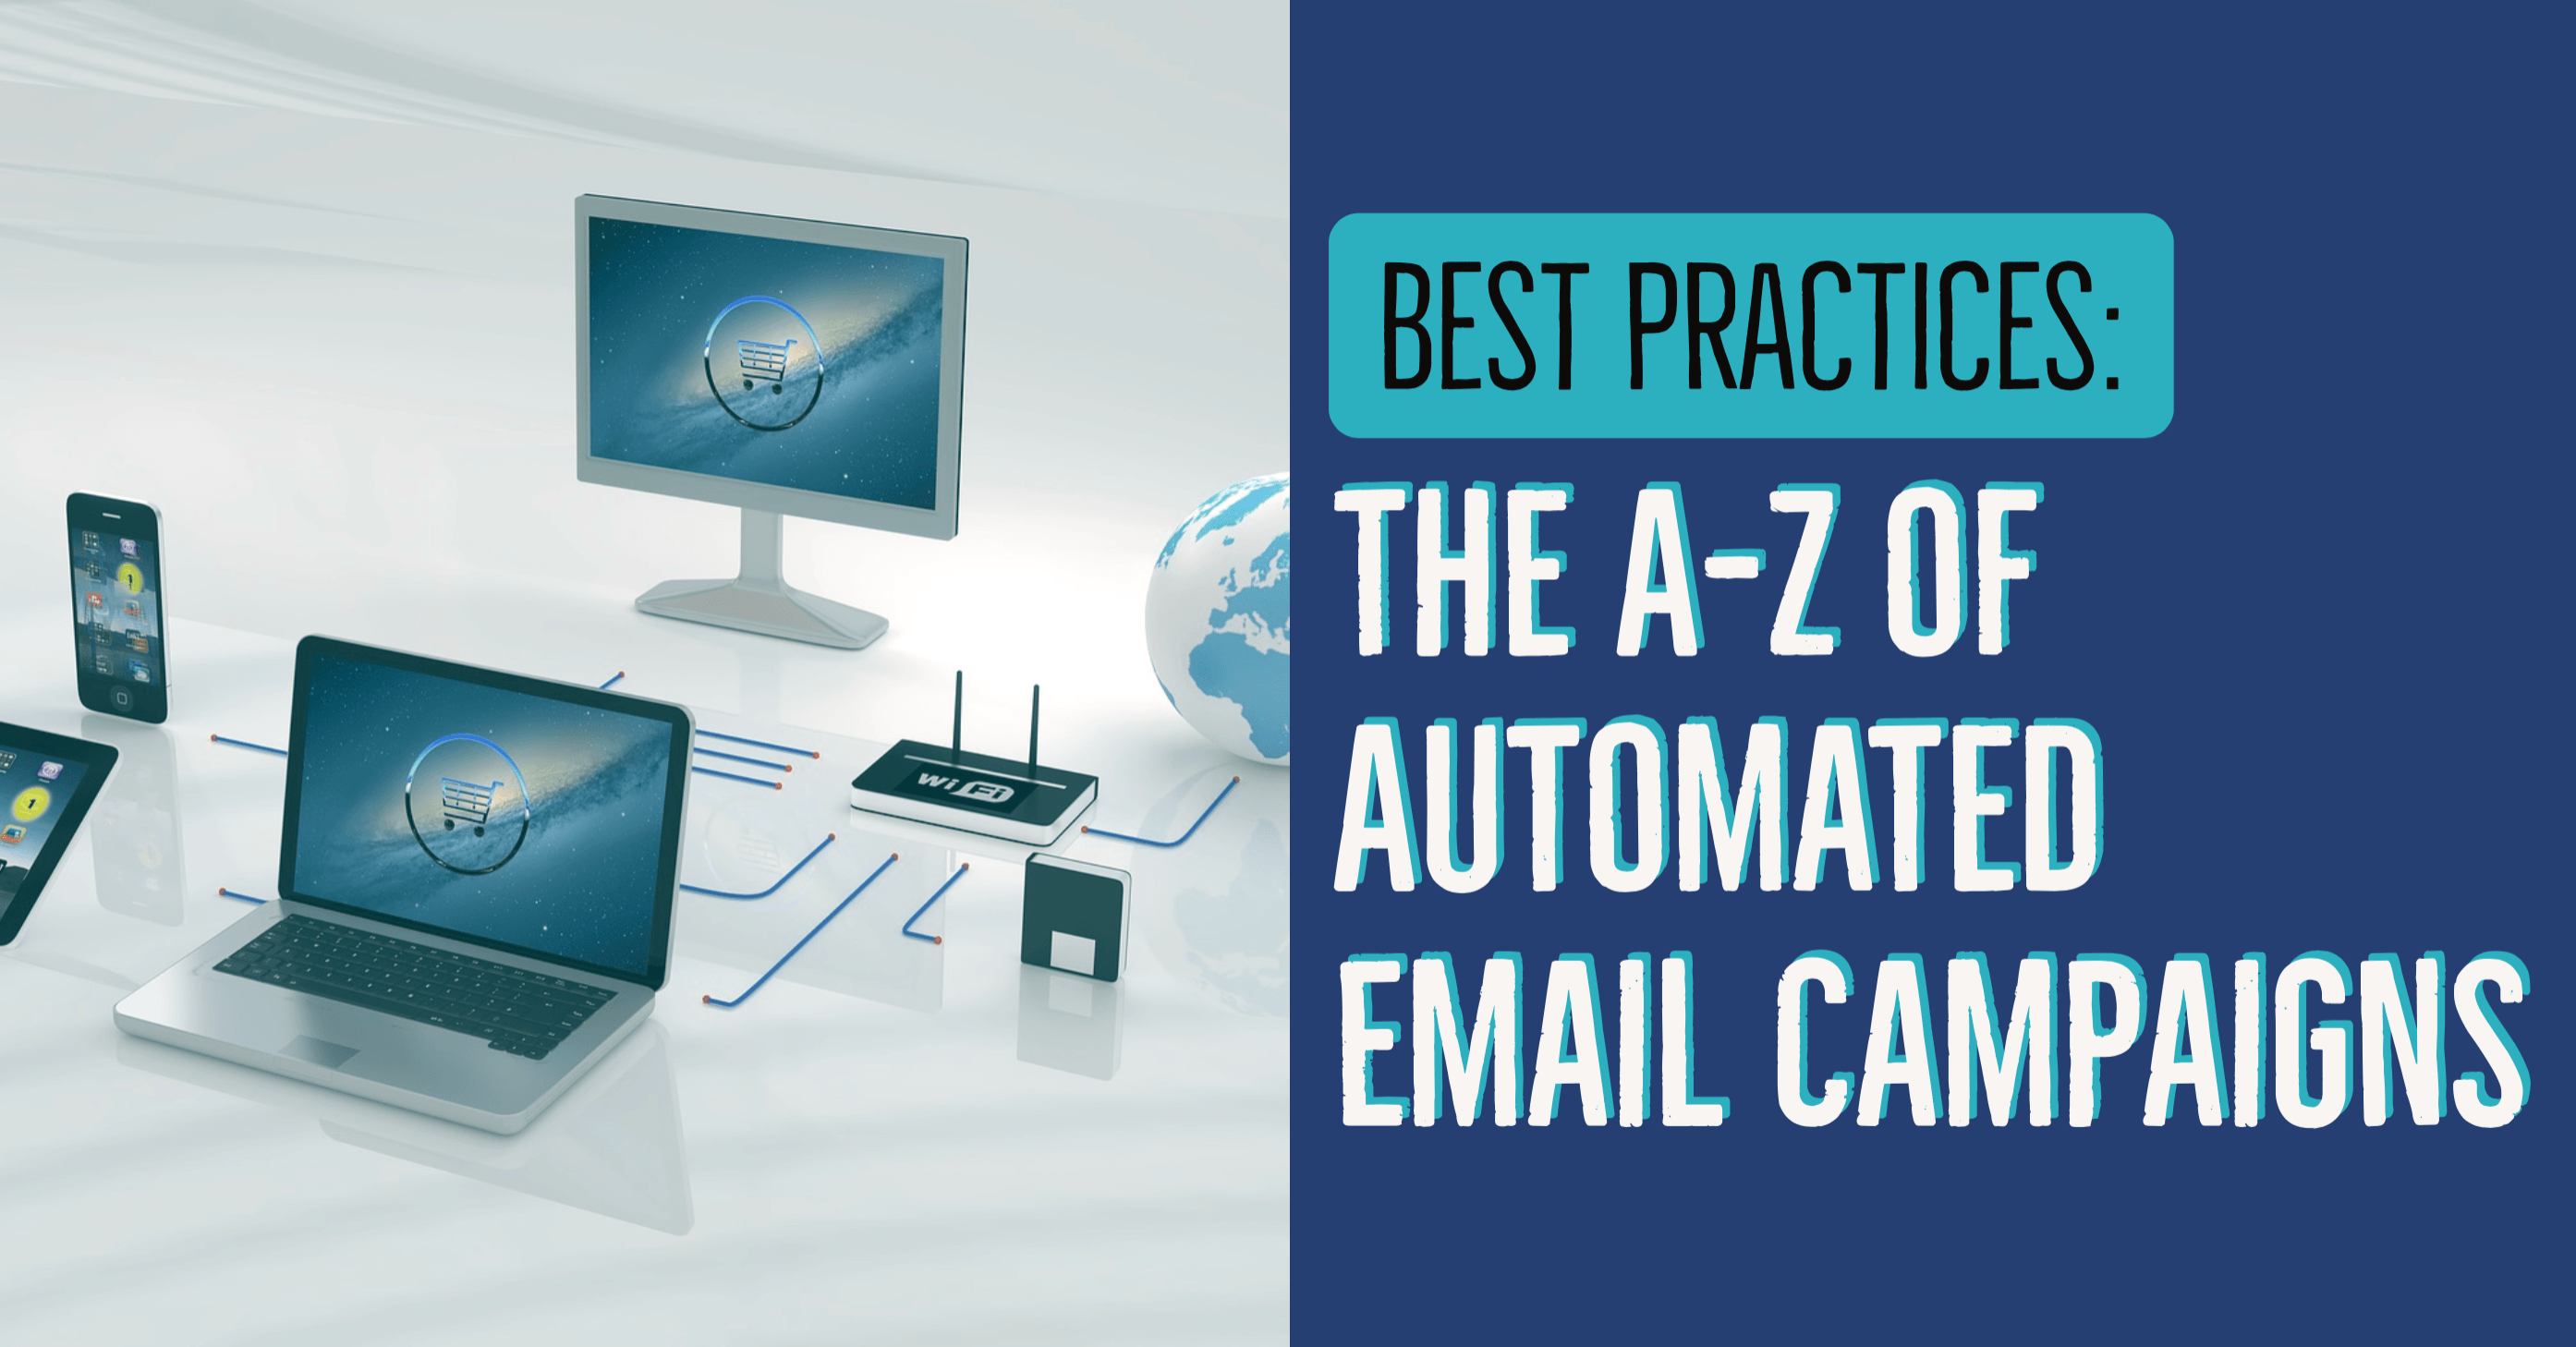 The A-Z of Automated Email Campaigns 31